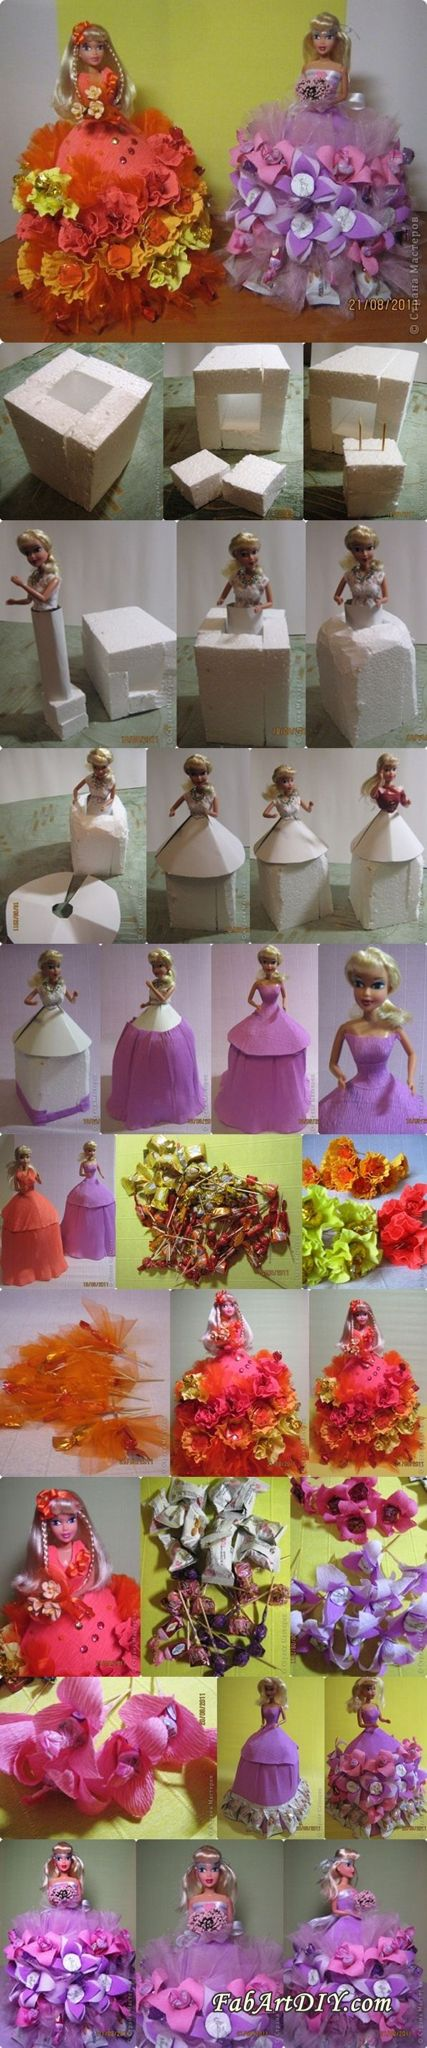 Barbie doll candy bouquet